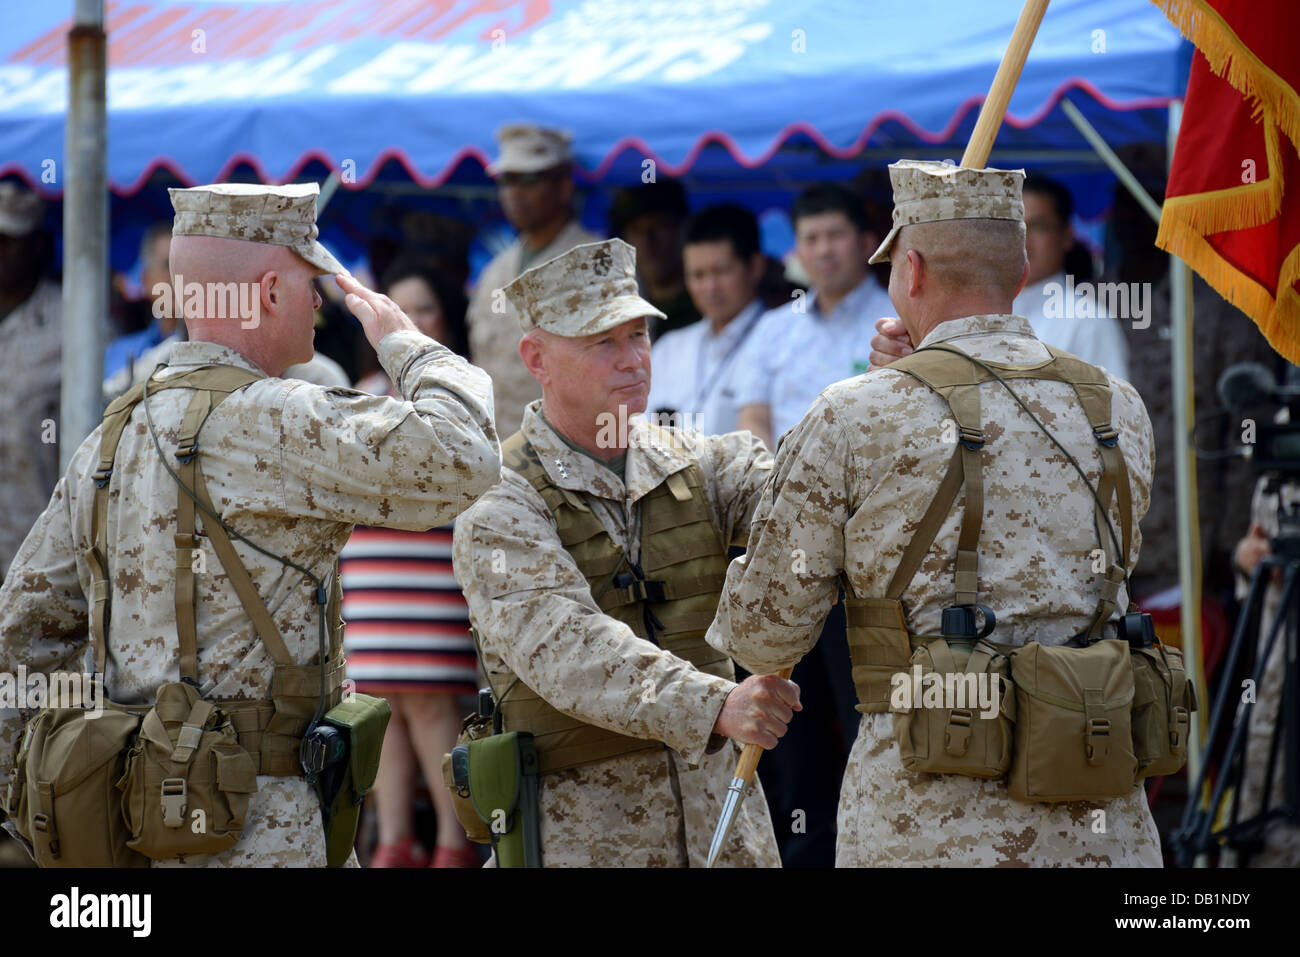 Lt. Gen. Kenneth J. Glueck Jr., center, passes the III Marine Expeditionary Force organizational colors to Lt. Gen. - Stock Image